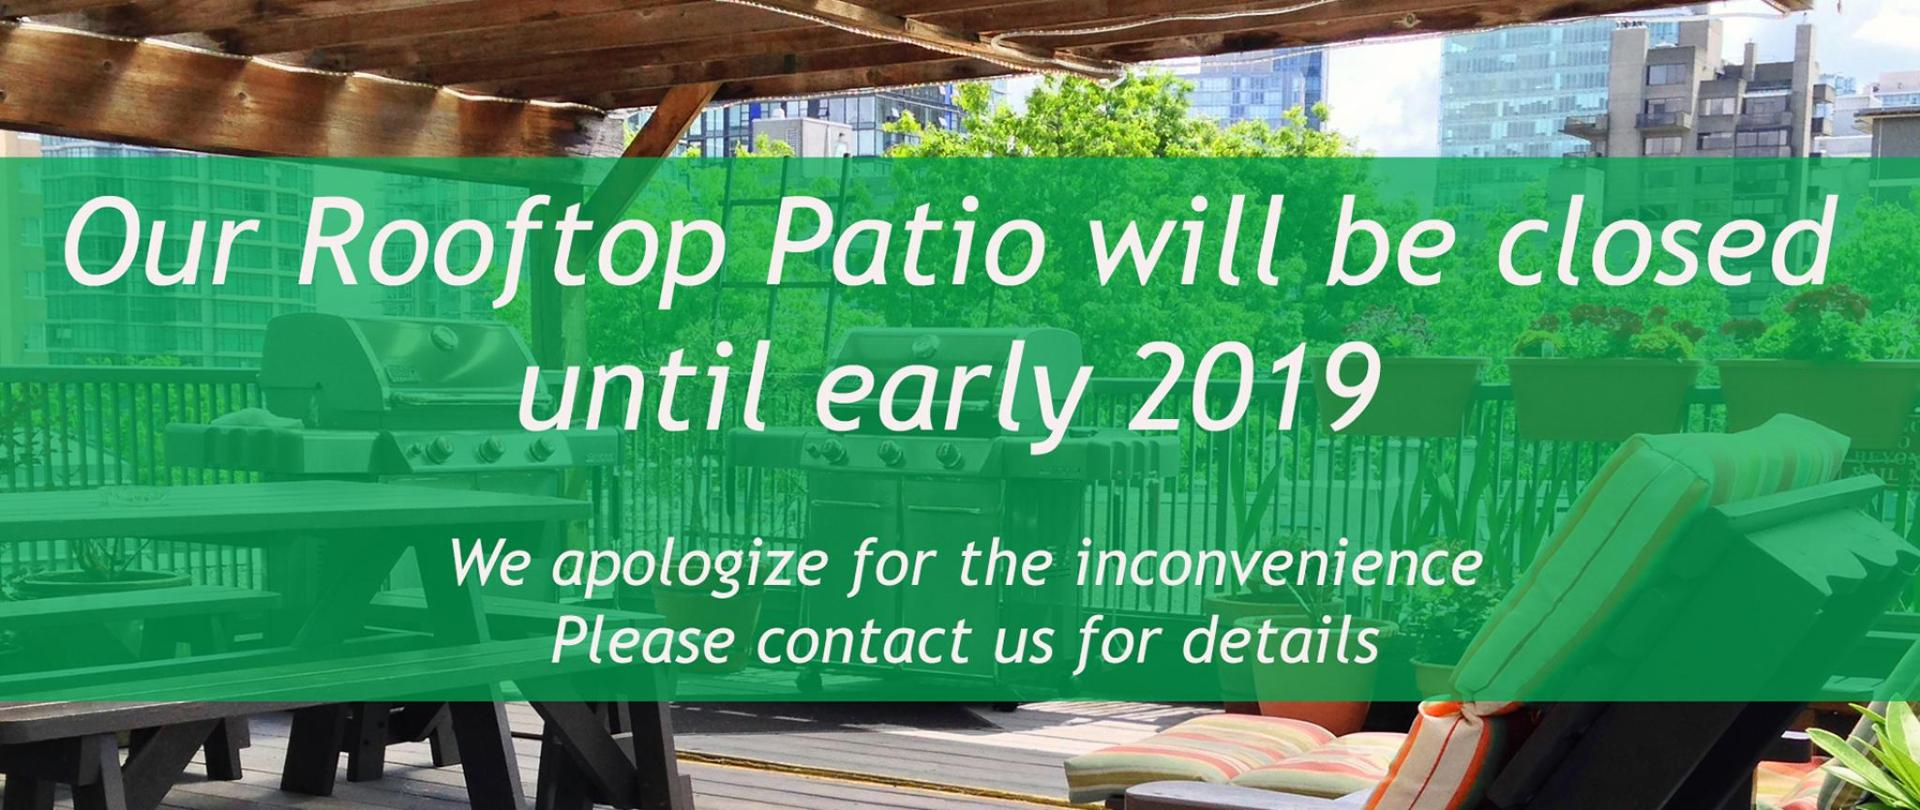 patio closure.jpg